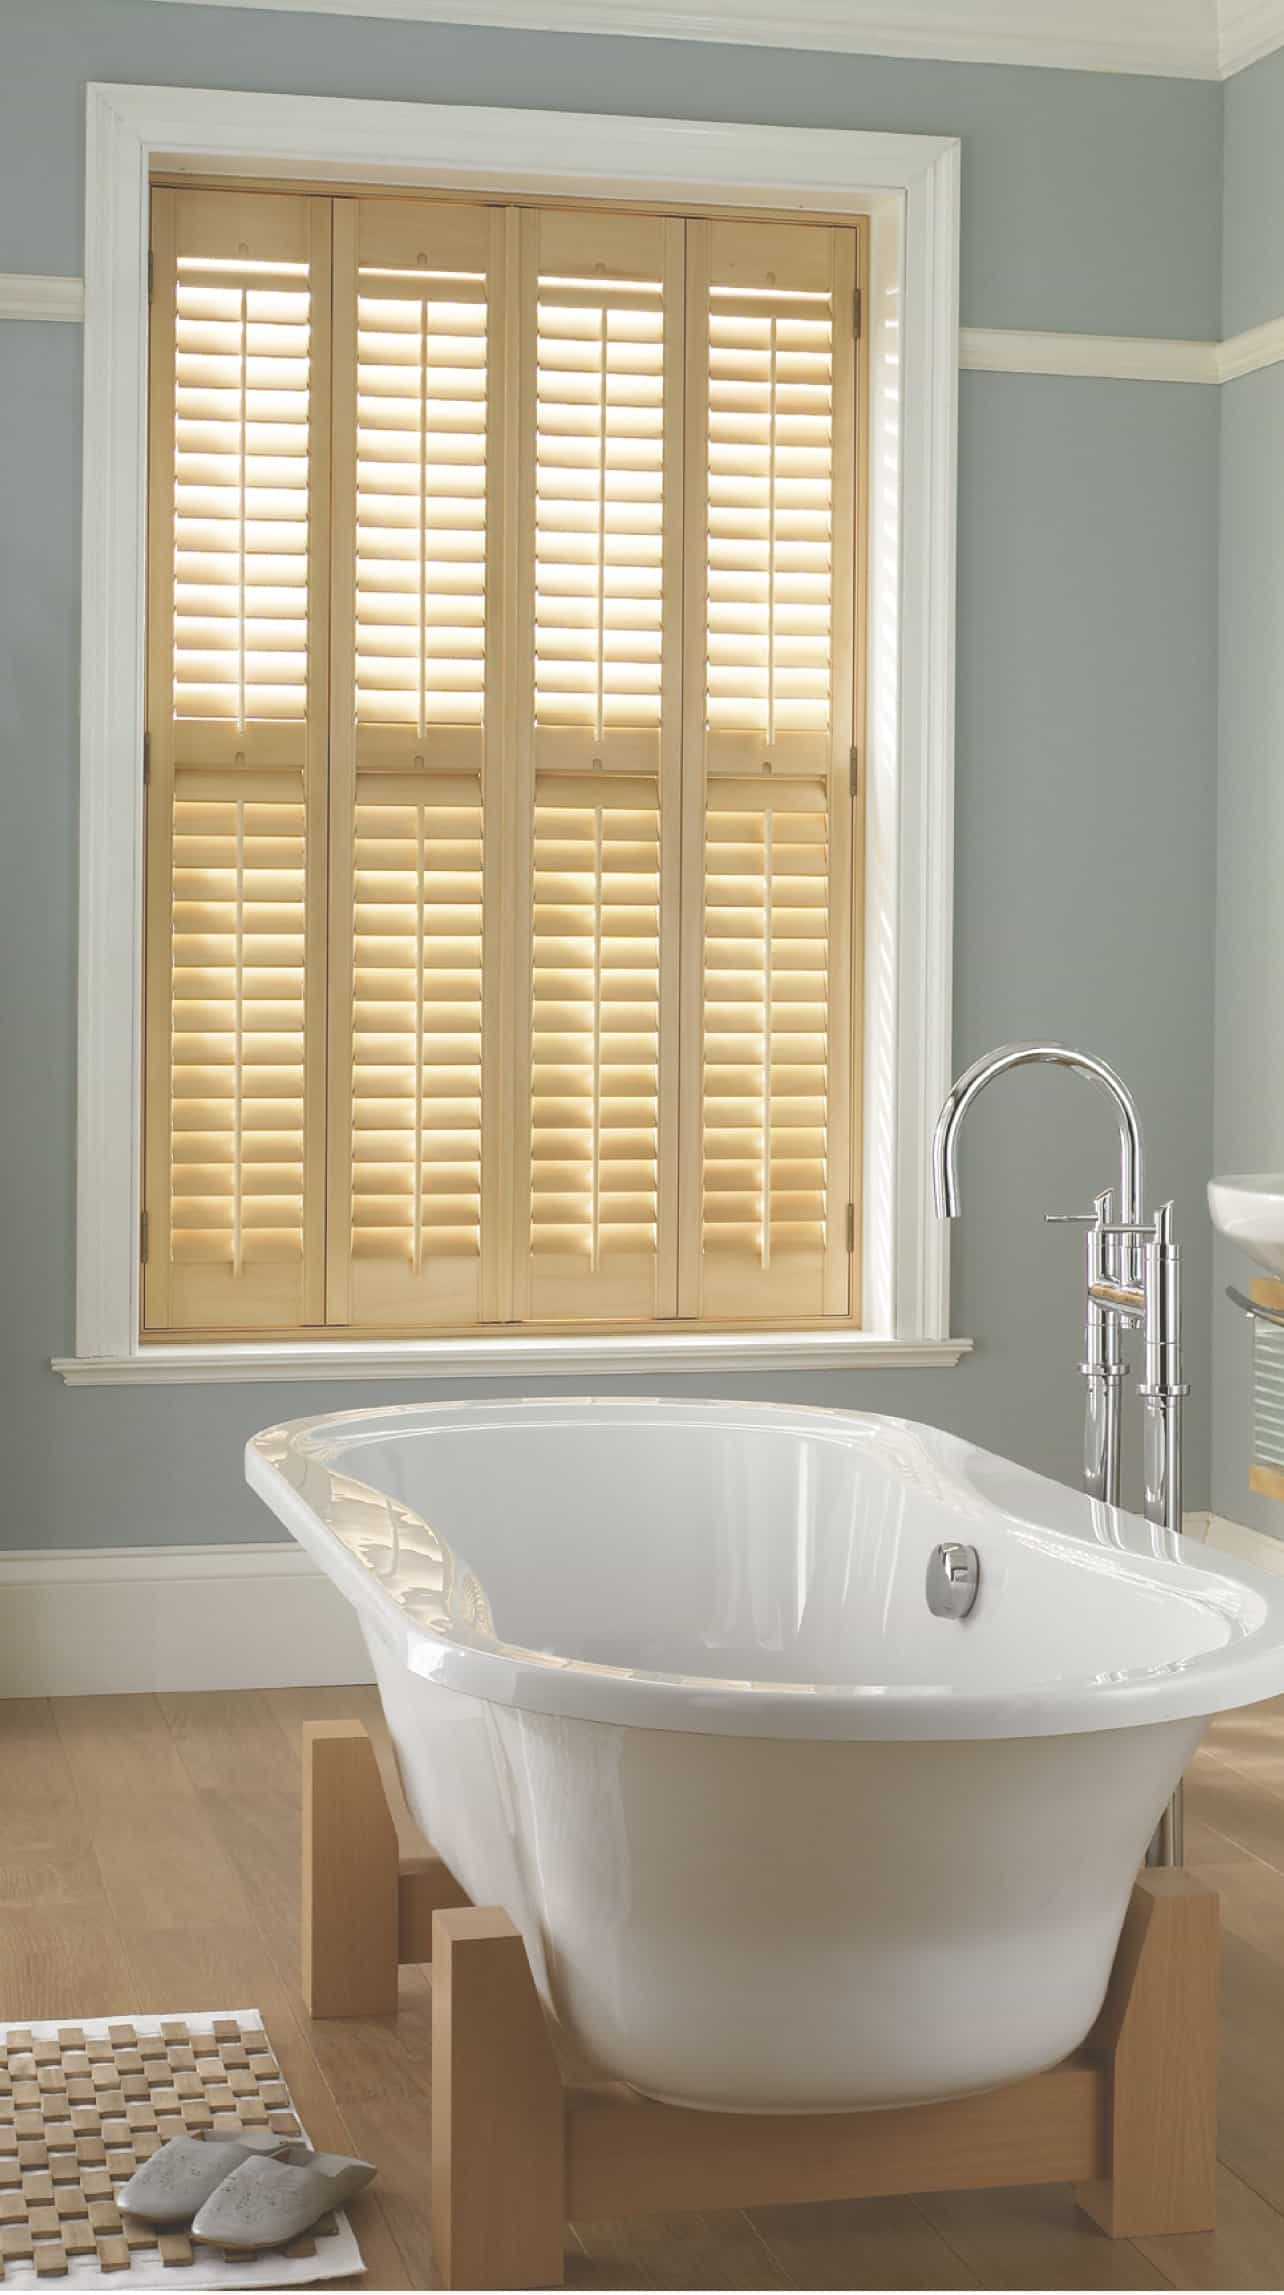 wooden plantation shutter fitted on a large window in a bathroom